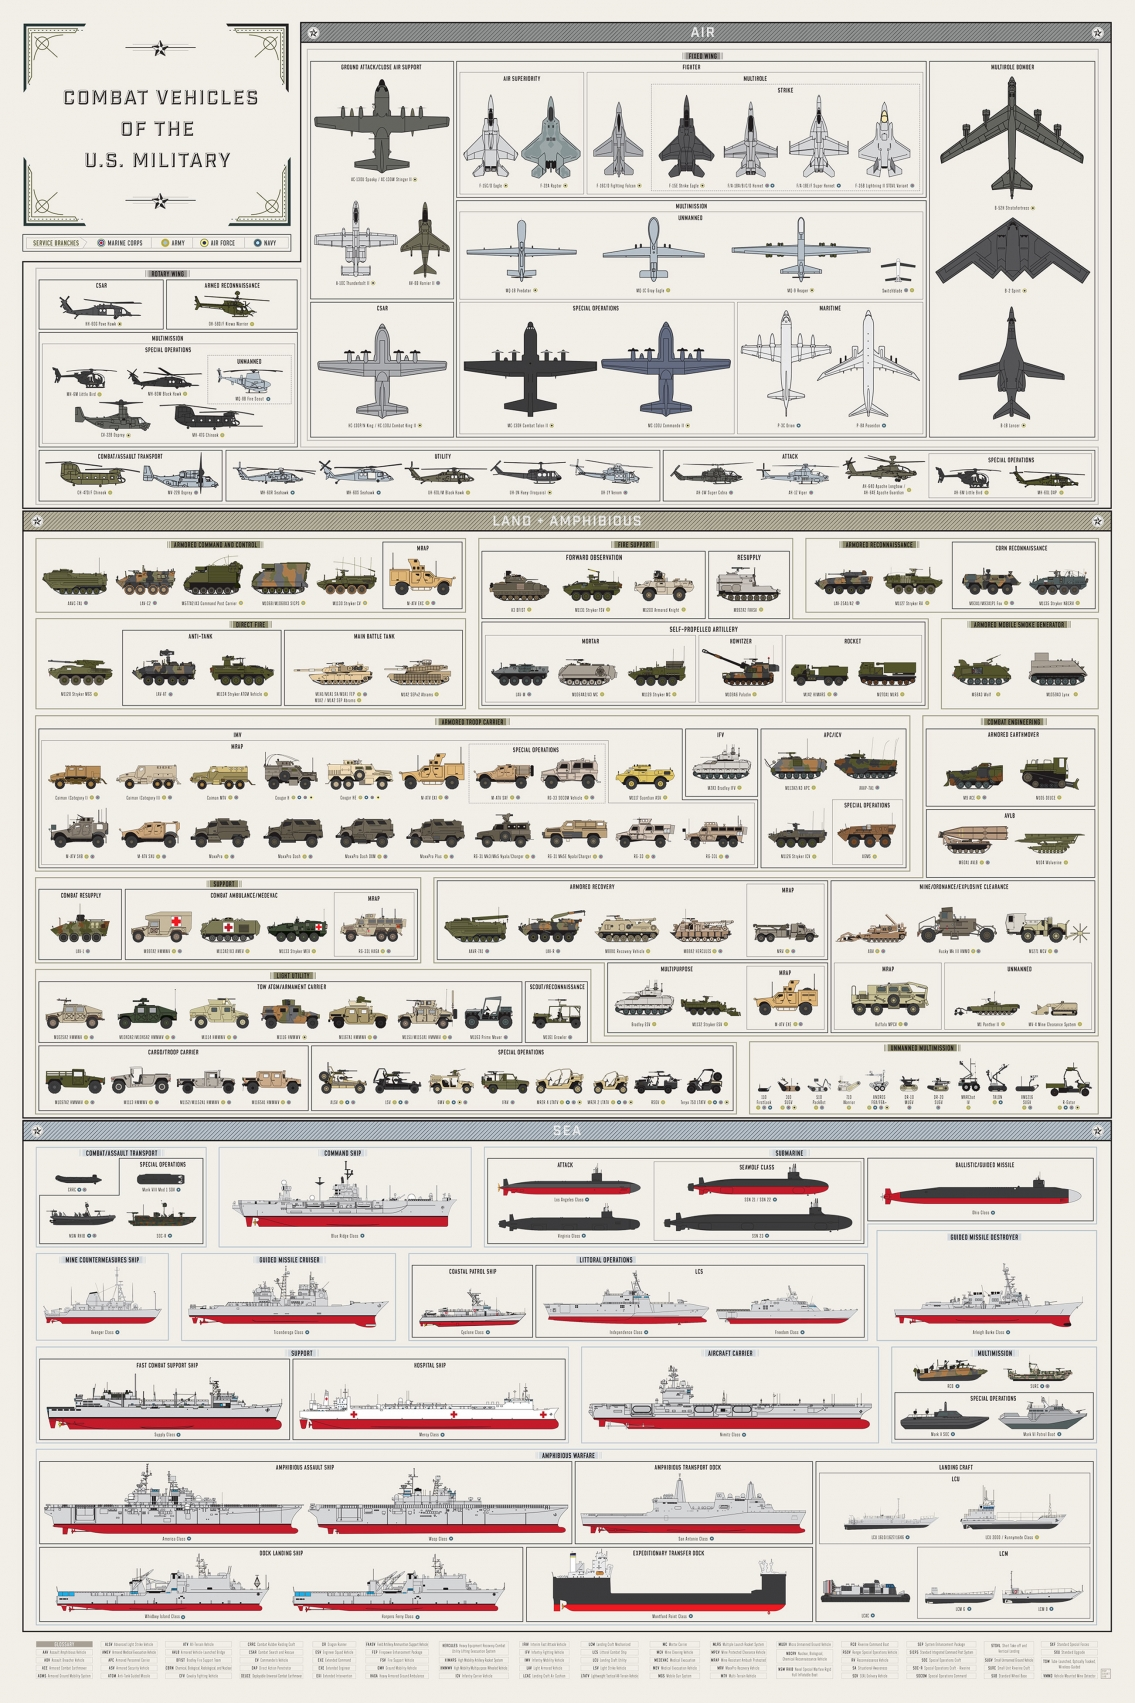 Combat Vehicles of the U.S. Military Infographic